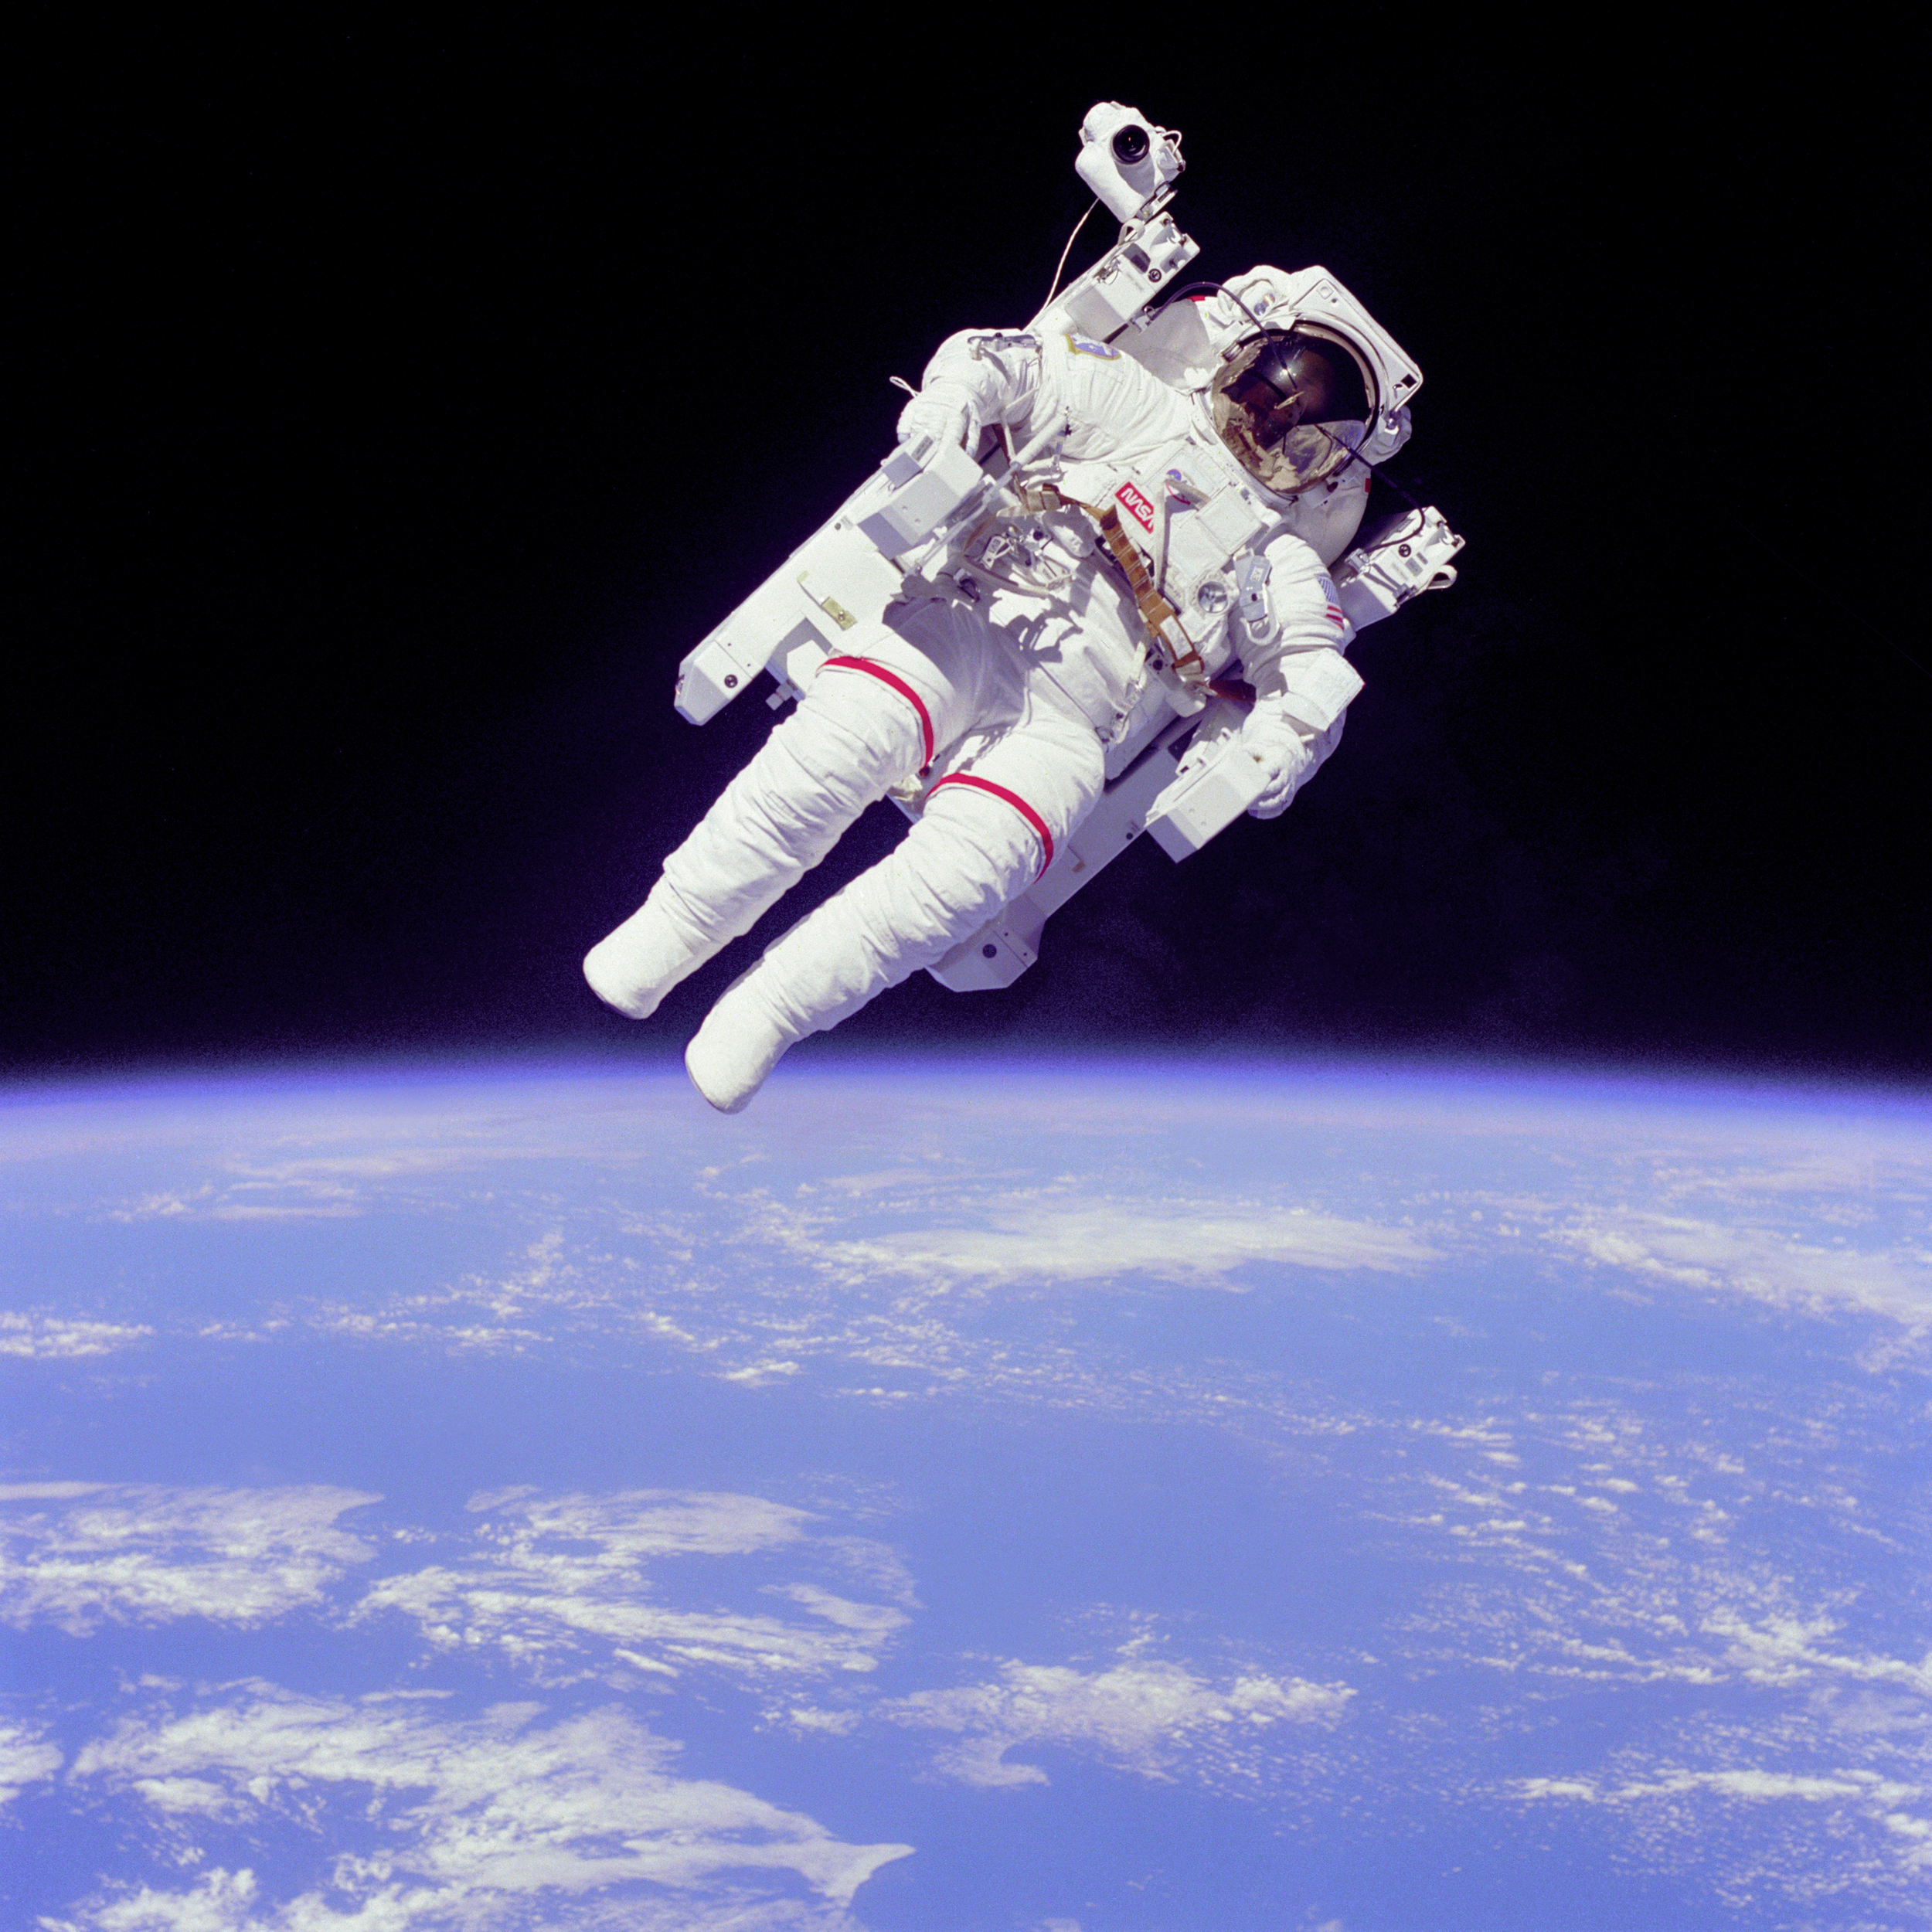 Bruce McCandless was the first man to ever exit a spacecraft without a tether, 1984. Photograph by Robert Lee Gibson.